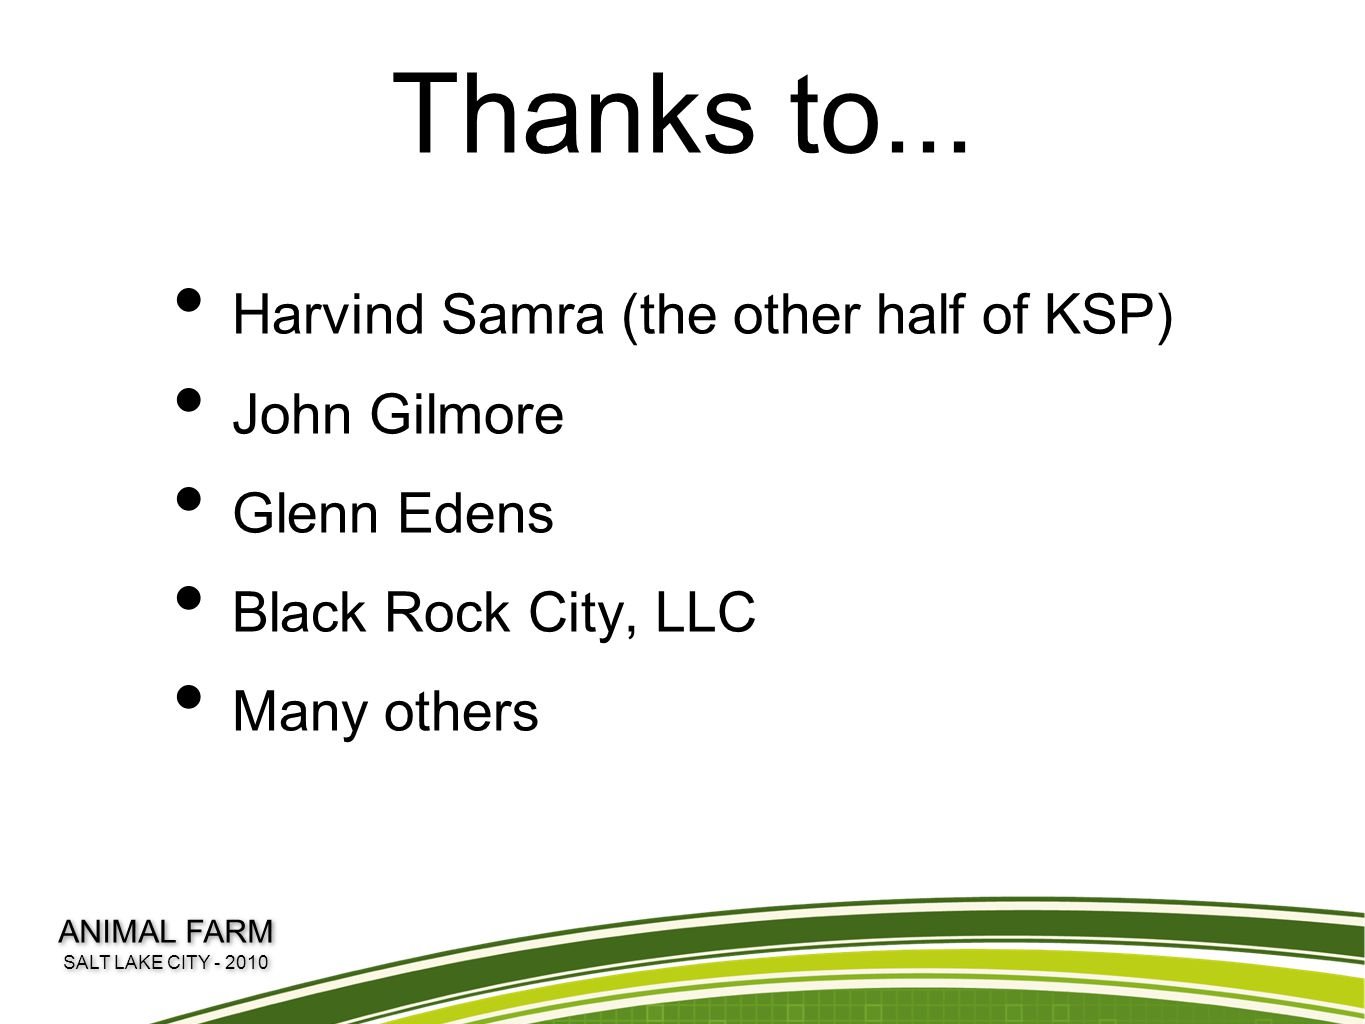 Thanks to... Harvind Samra (the other half of KSP) John Gilmore Glenn Edens Black Rock City, LLC Many others ANIMAL FARM SALT LAKE CITY - 2010 ANIMAL